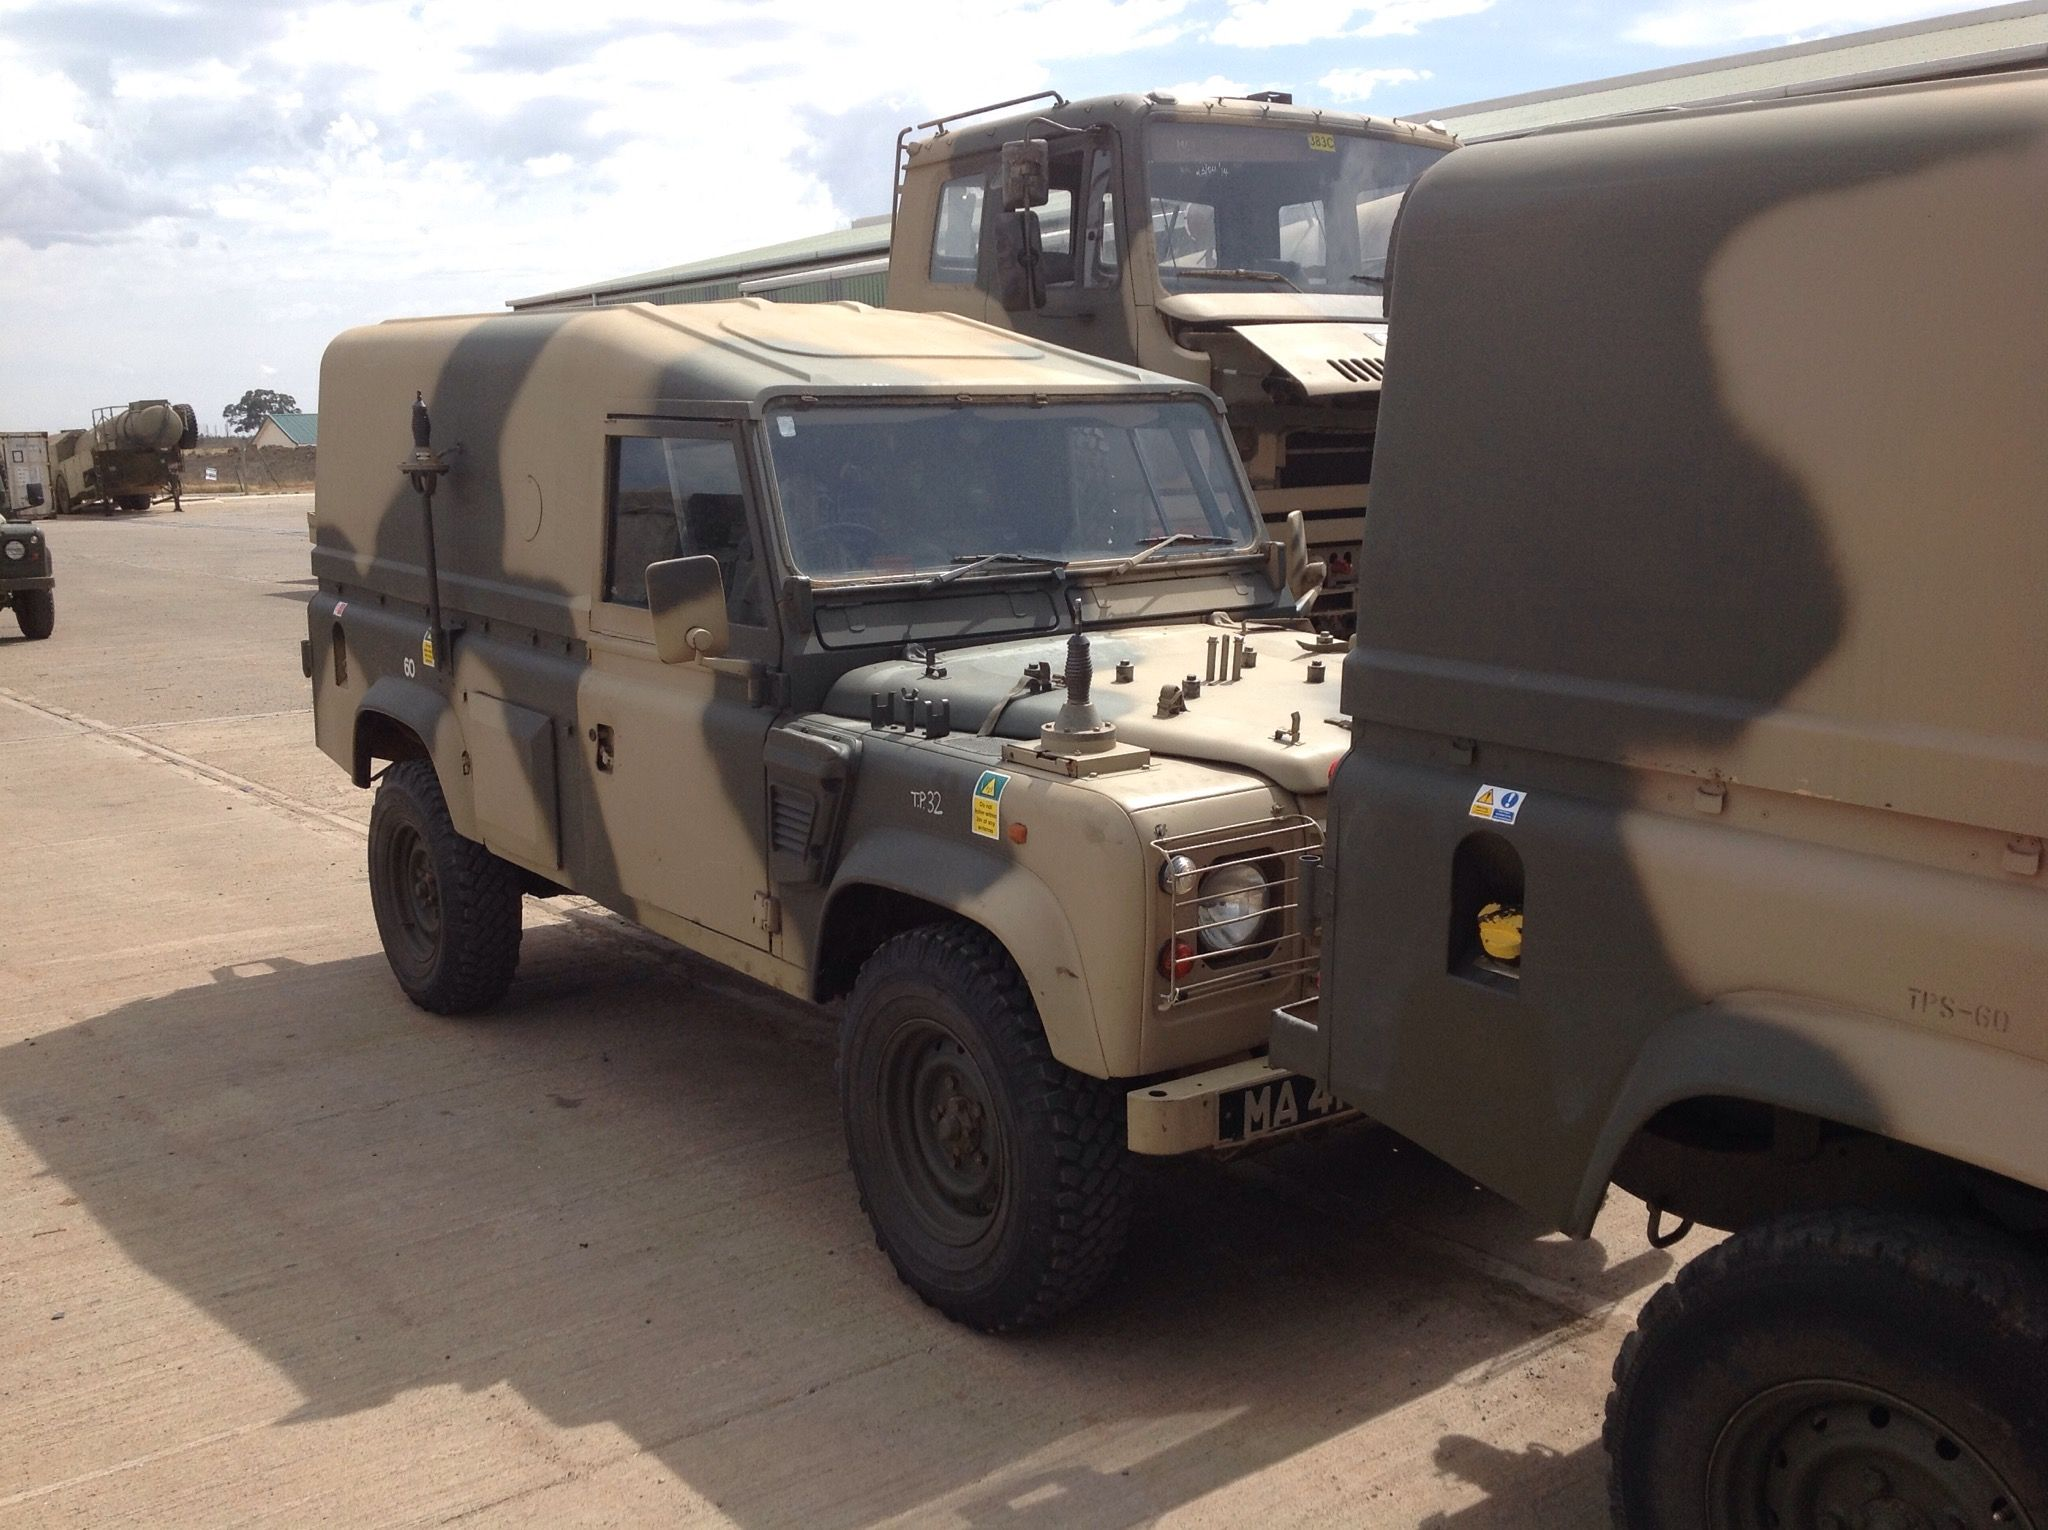 British Army Kenya Batuk Land Rover Google Search Land Rover